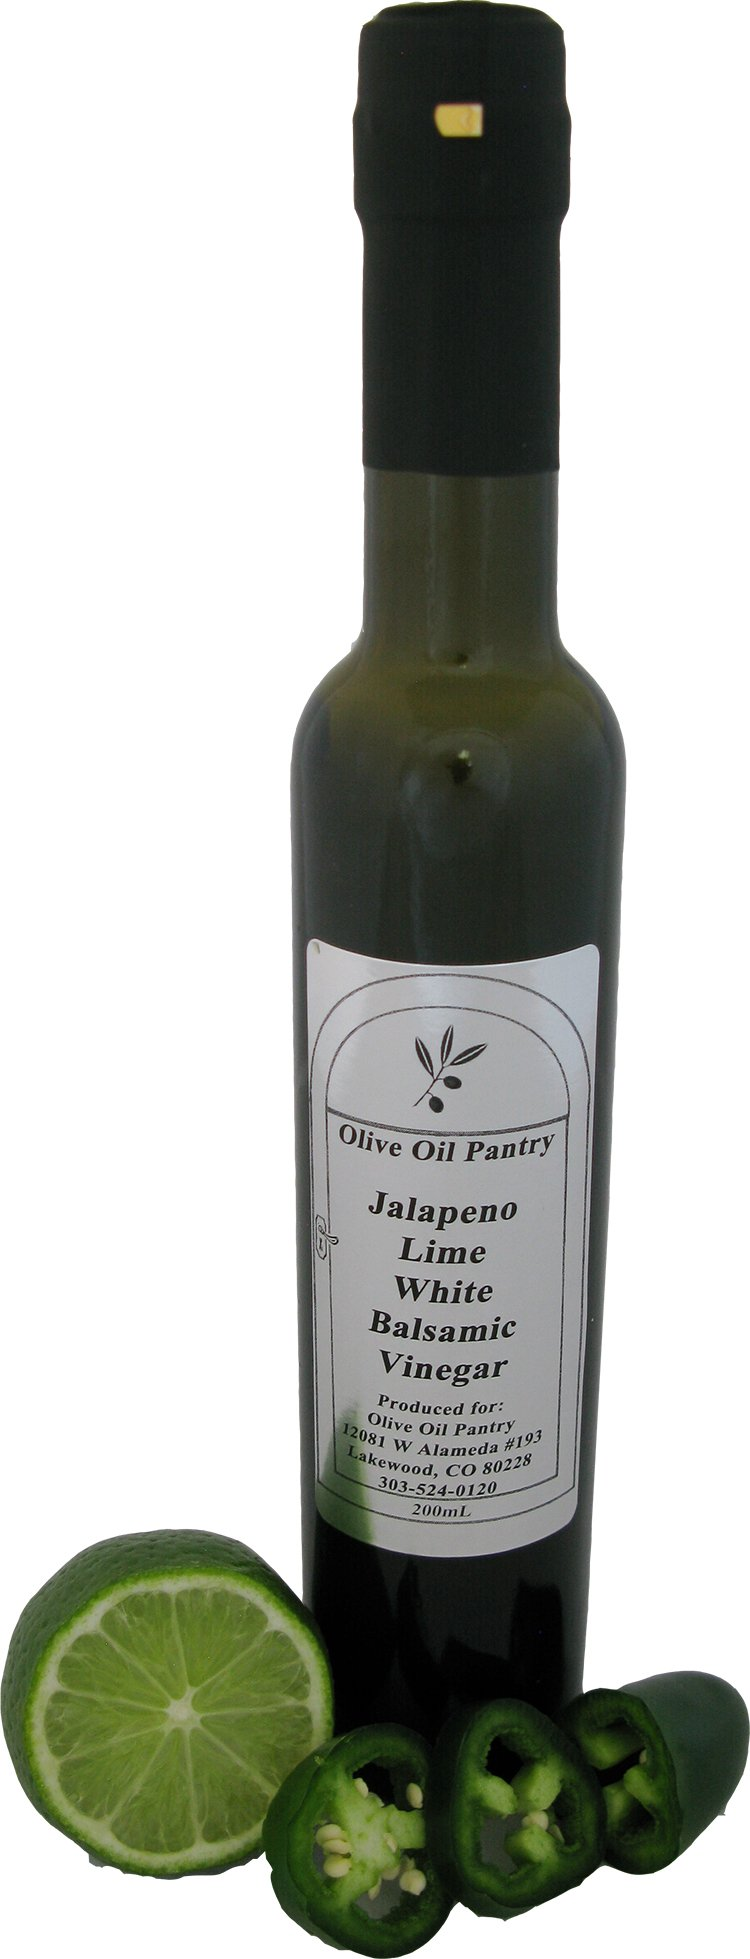 Olive Oil Pantry Jalapeno Lime Flavor Infused White Balsamic Vineger by Olive Oil Pantry